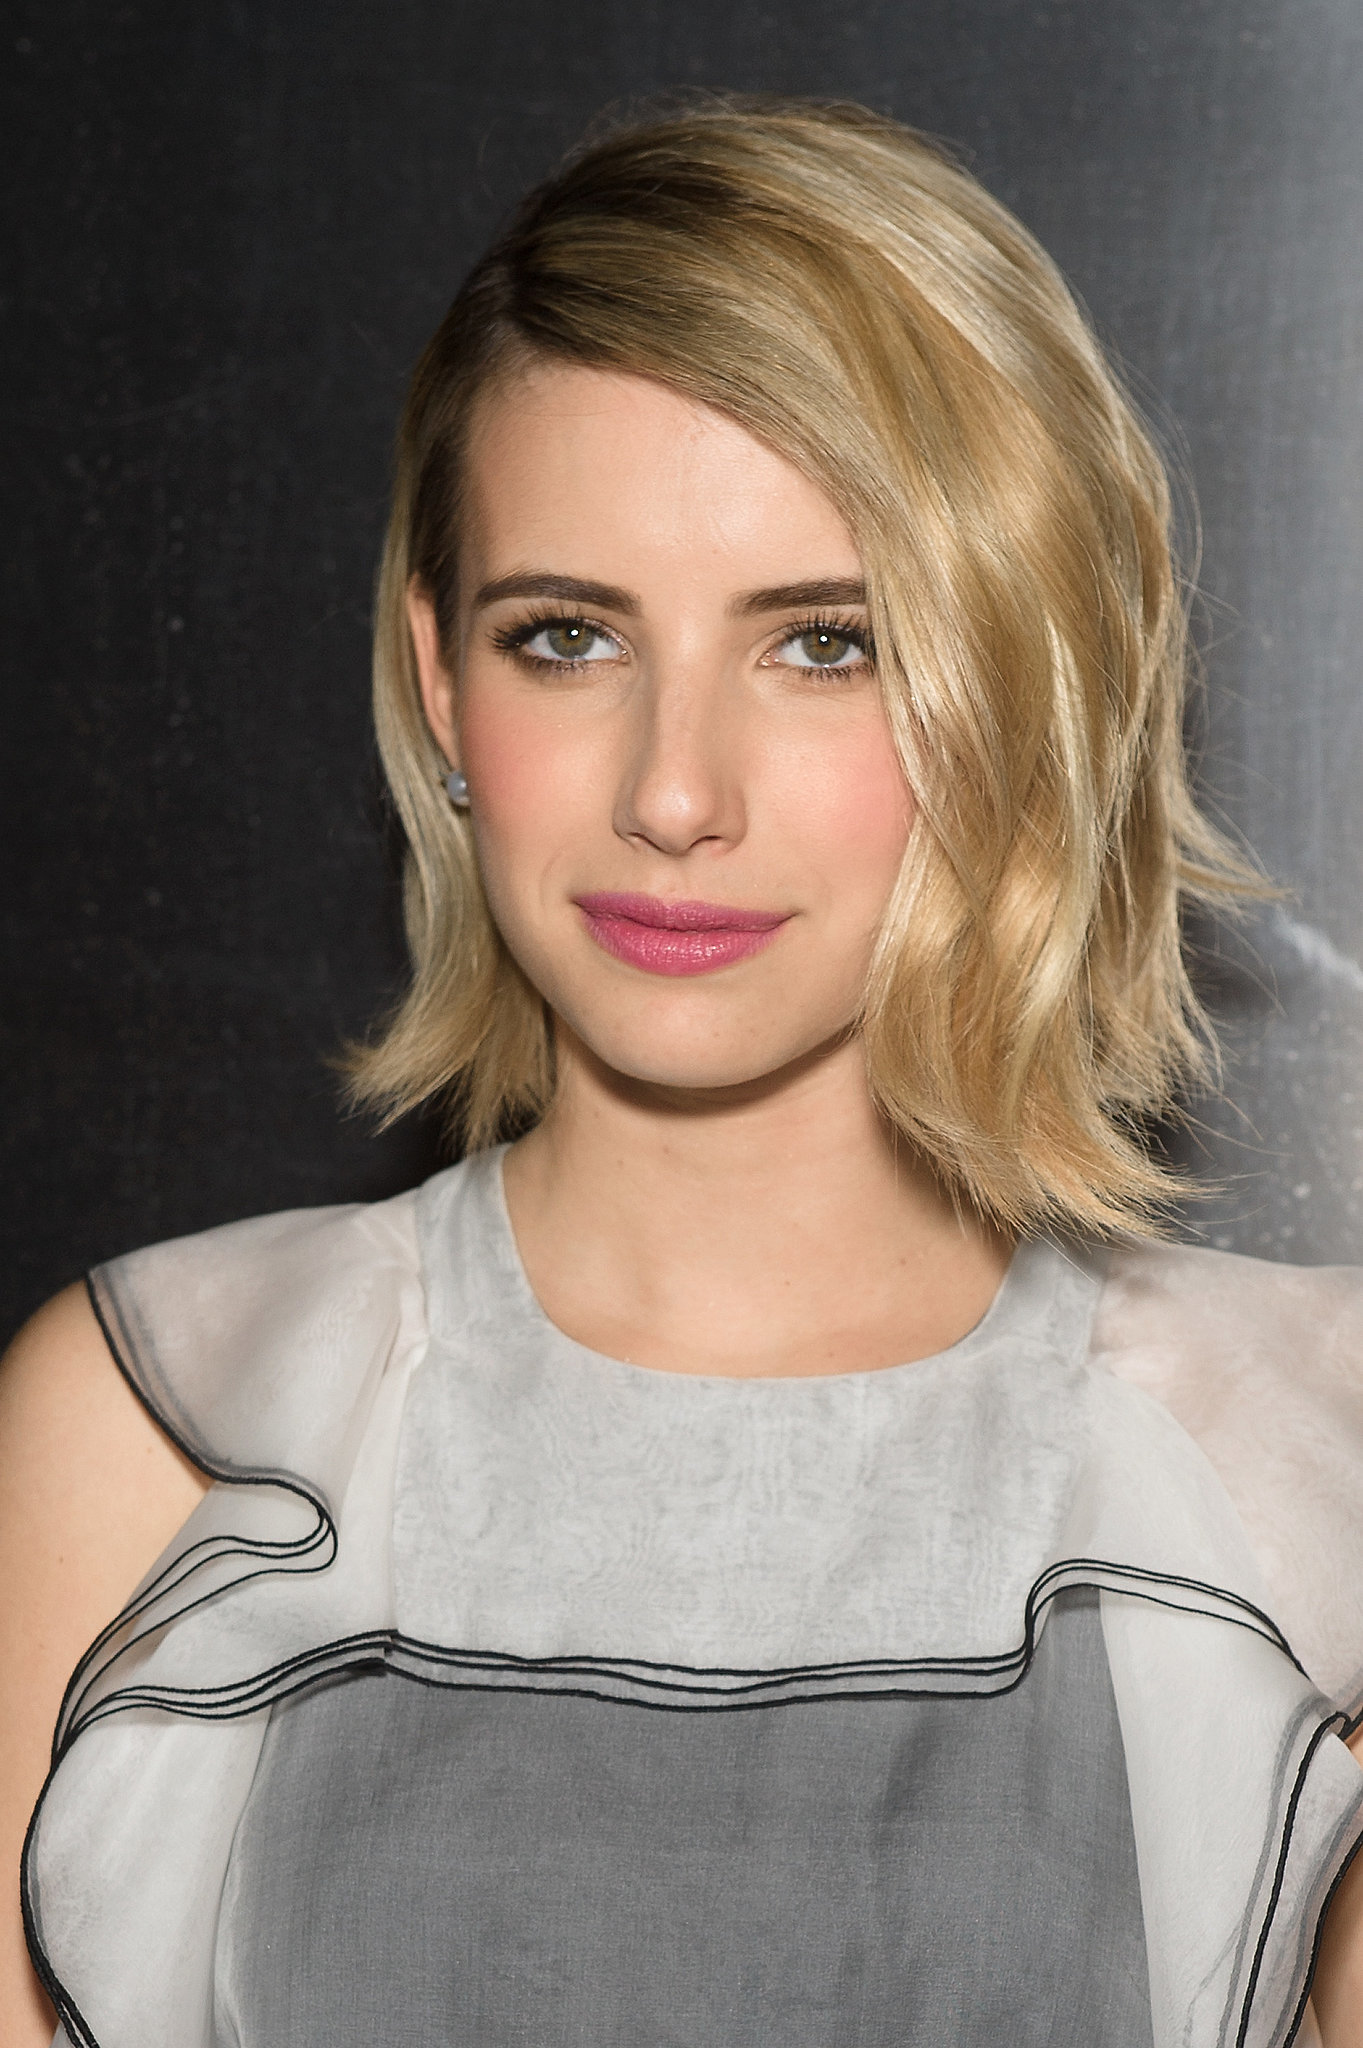 emma roberts haircut - photo #12